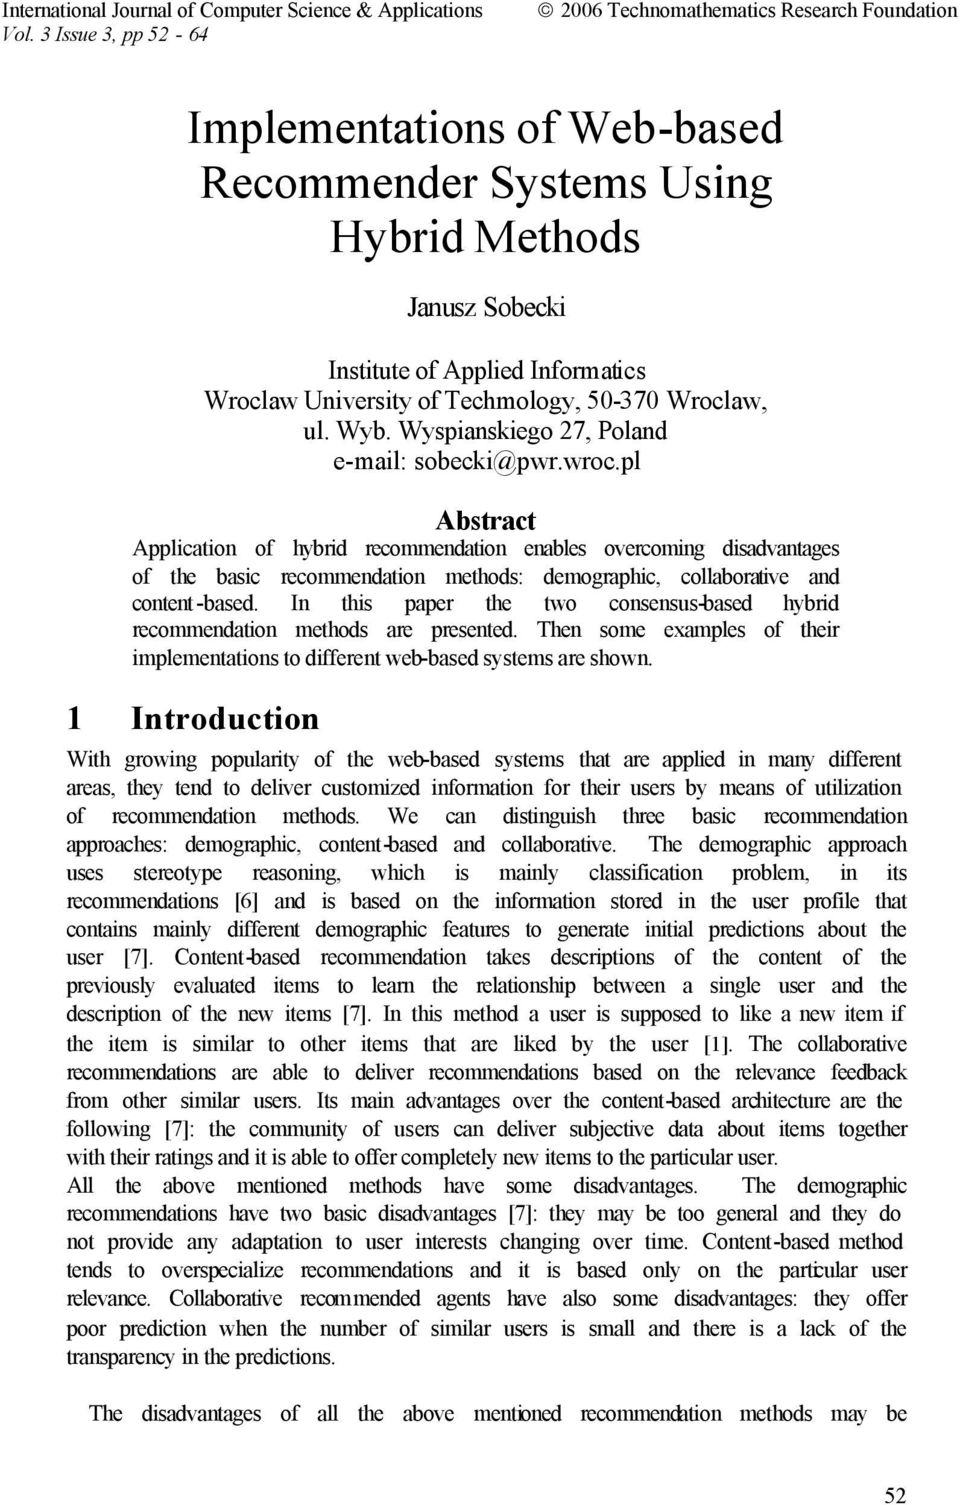 Implementations of Web-based Recommender Systems Using